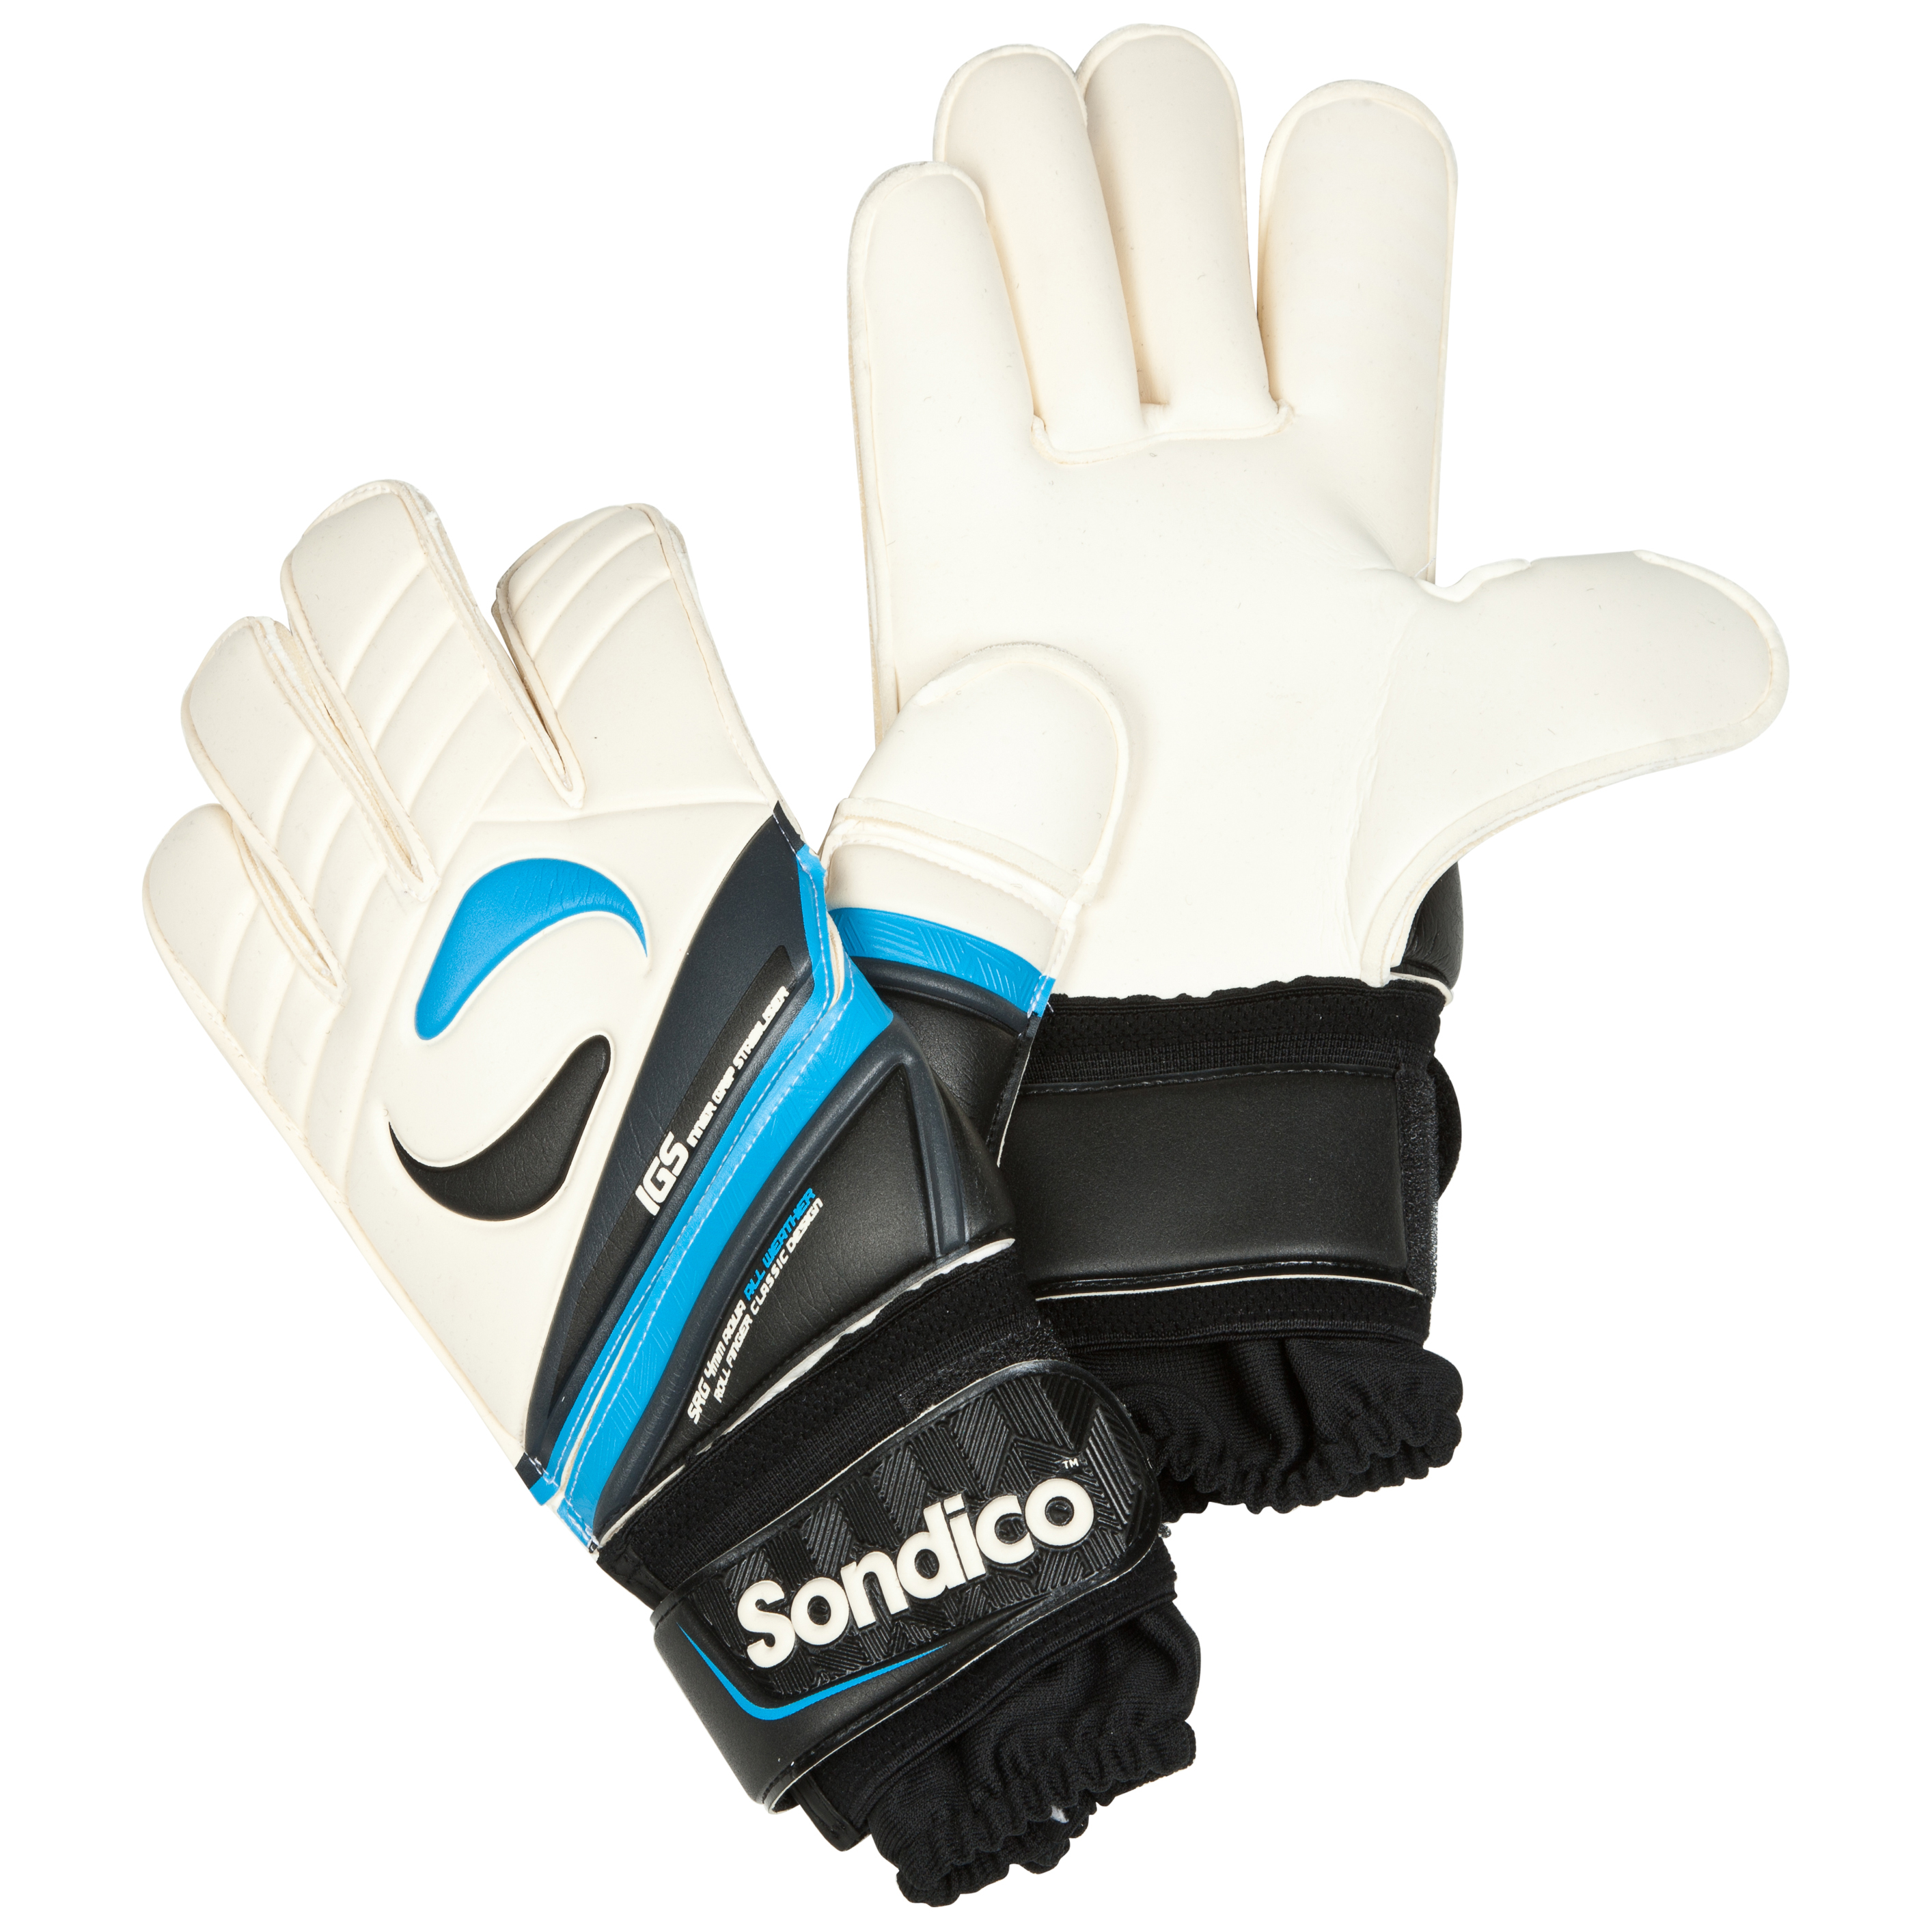 Sondico Midas Pro Classic Roll Finger Goalkeeper Gloves - Black/White/Gun Metal/Cyan